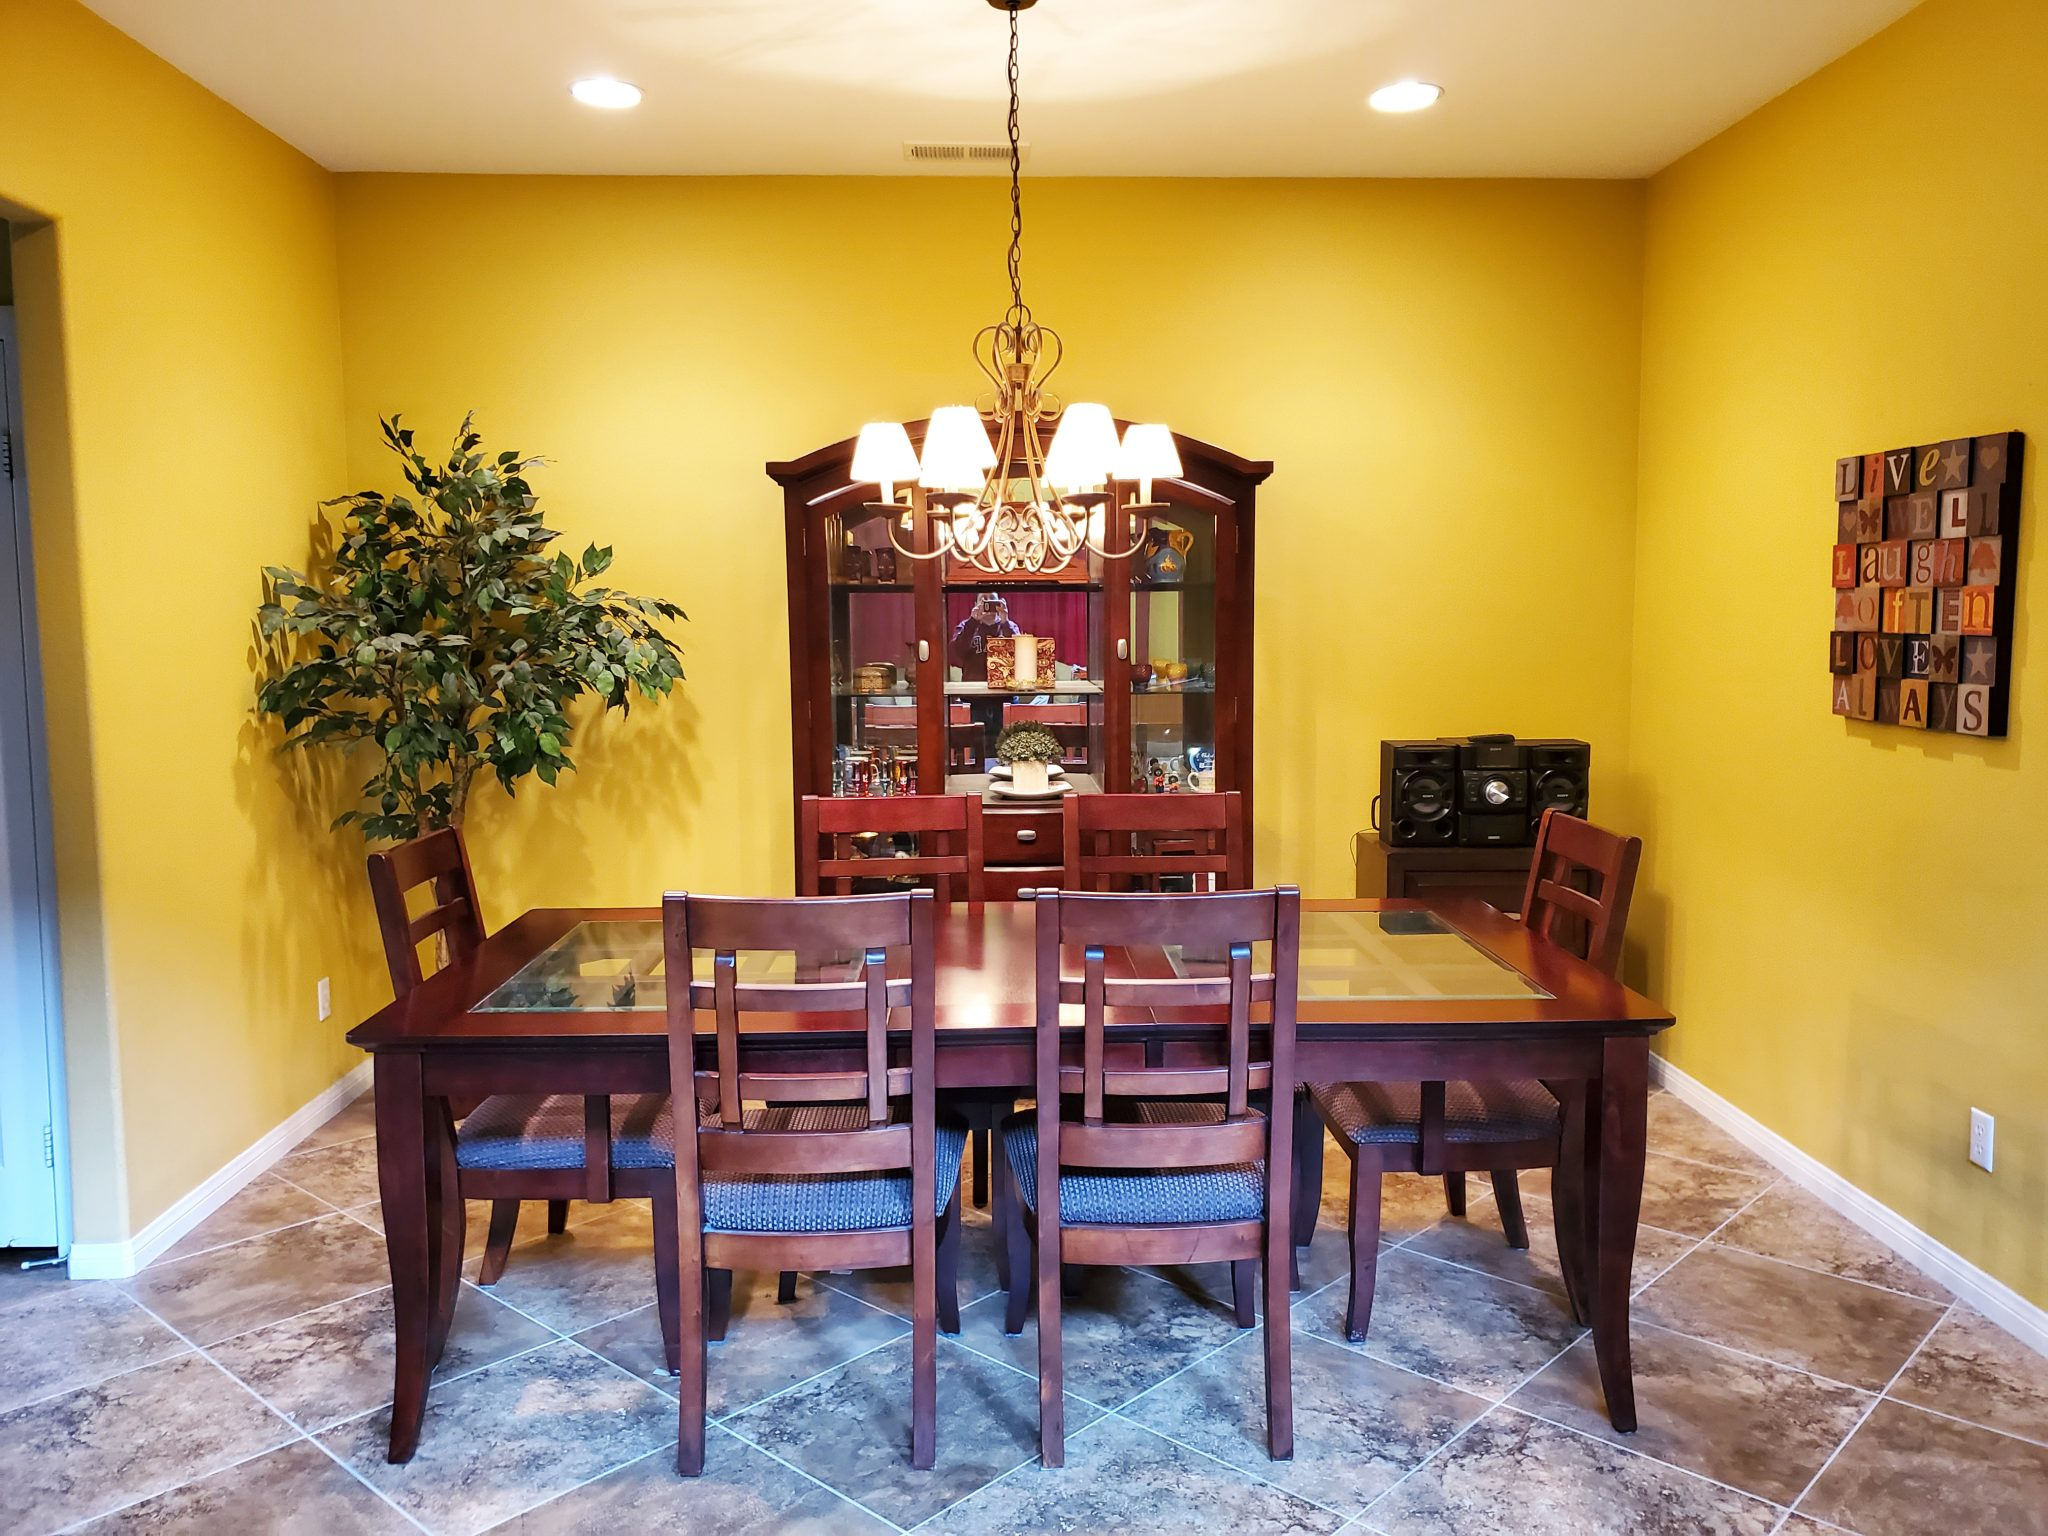 124 Boston Ave., Beaumont, Ca. 92223 Dining Room